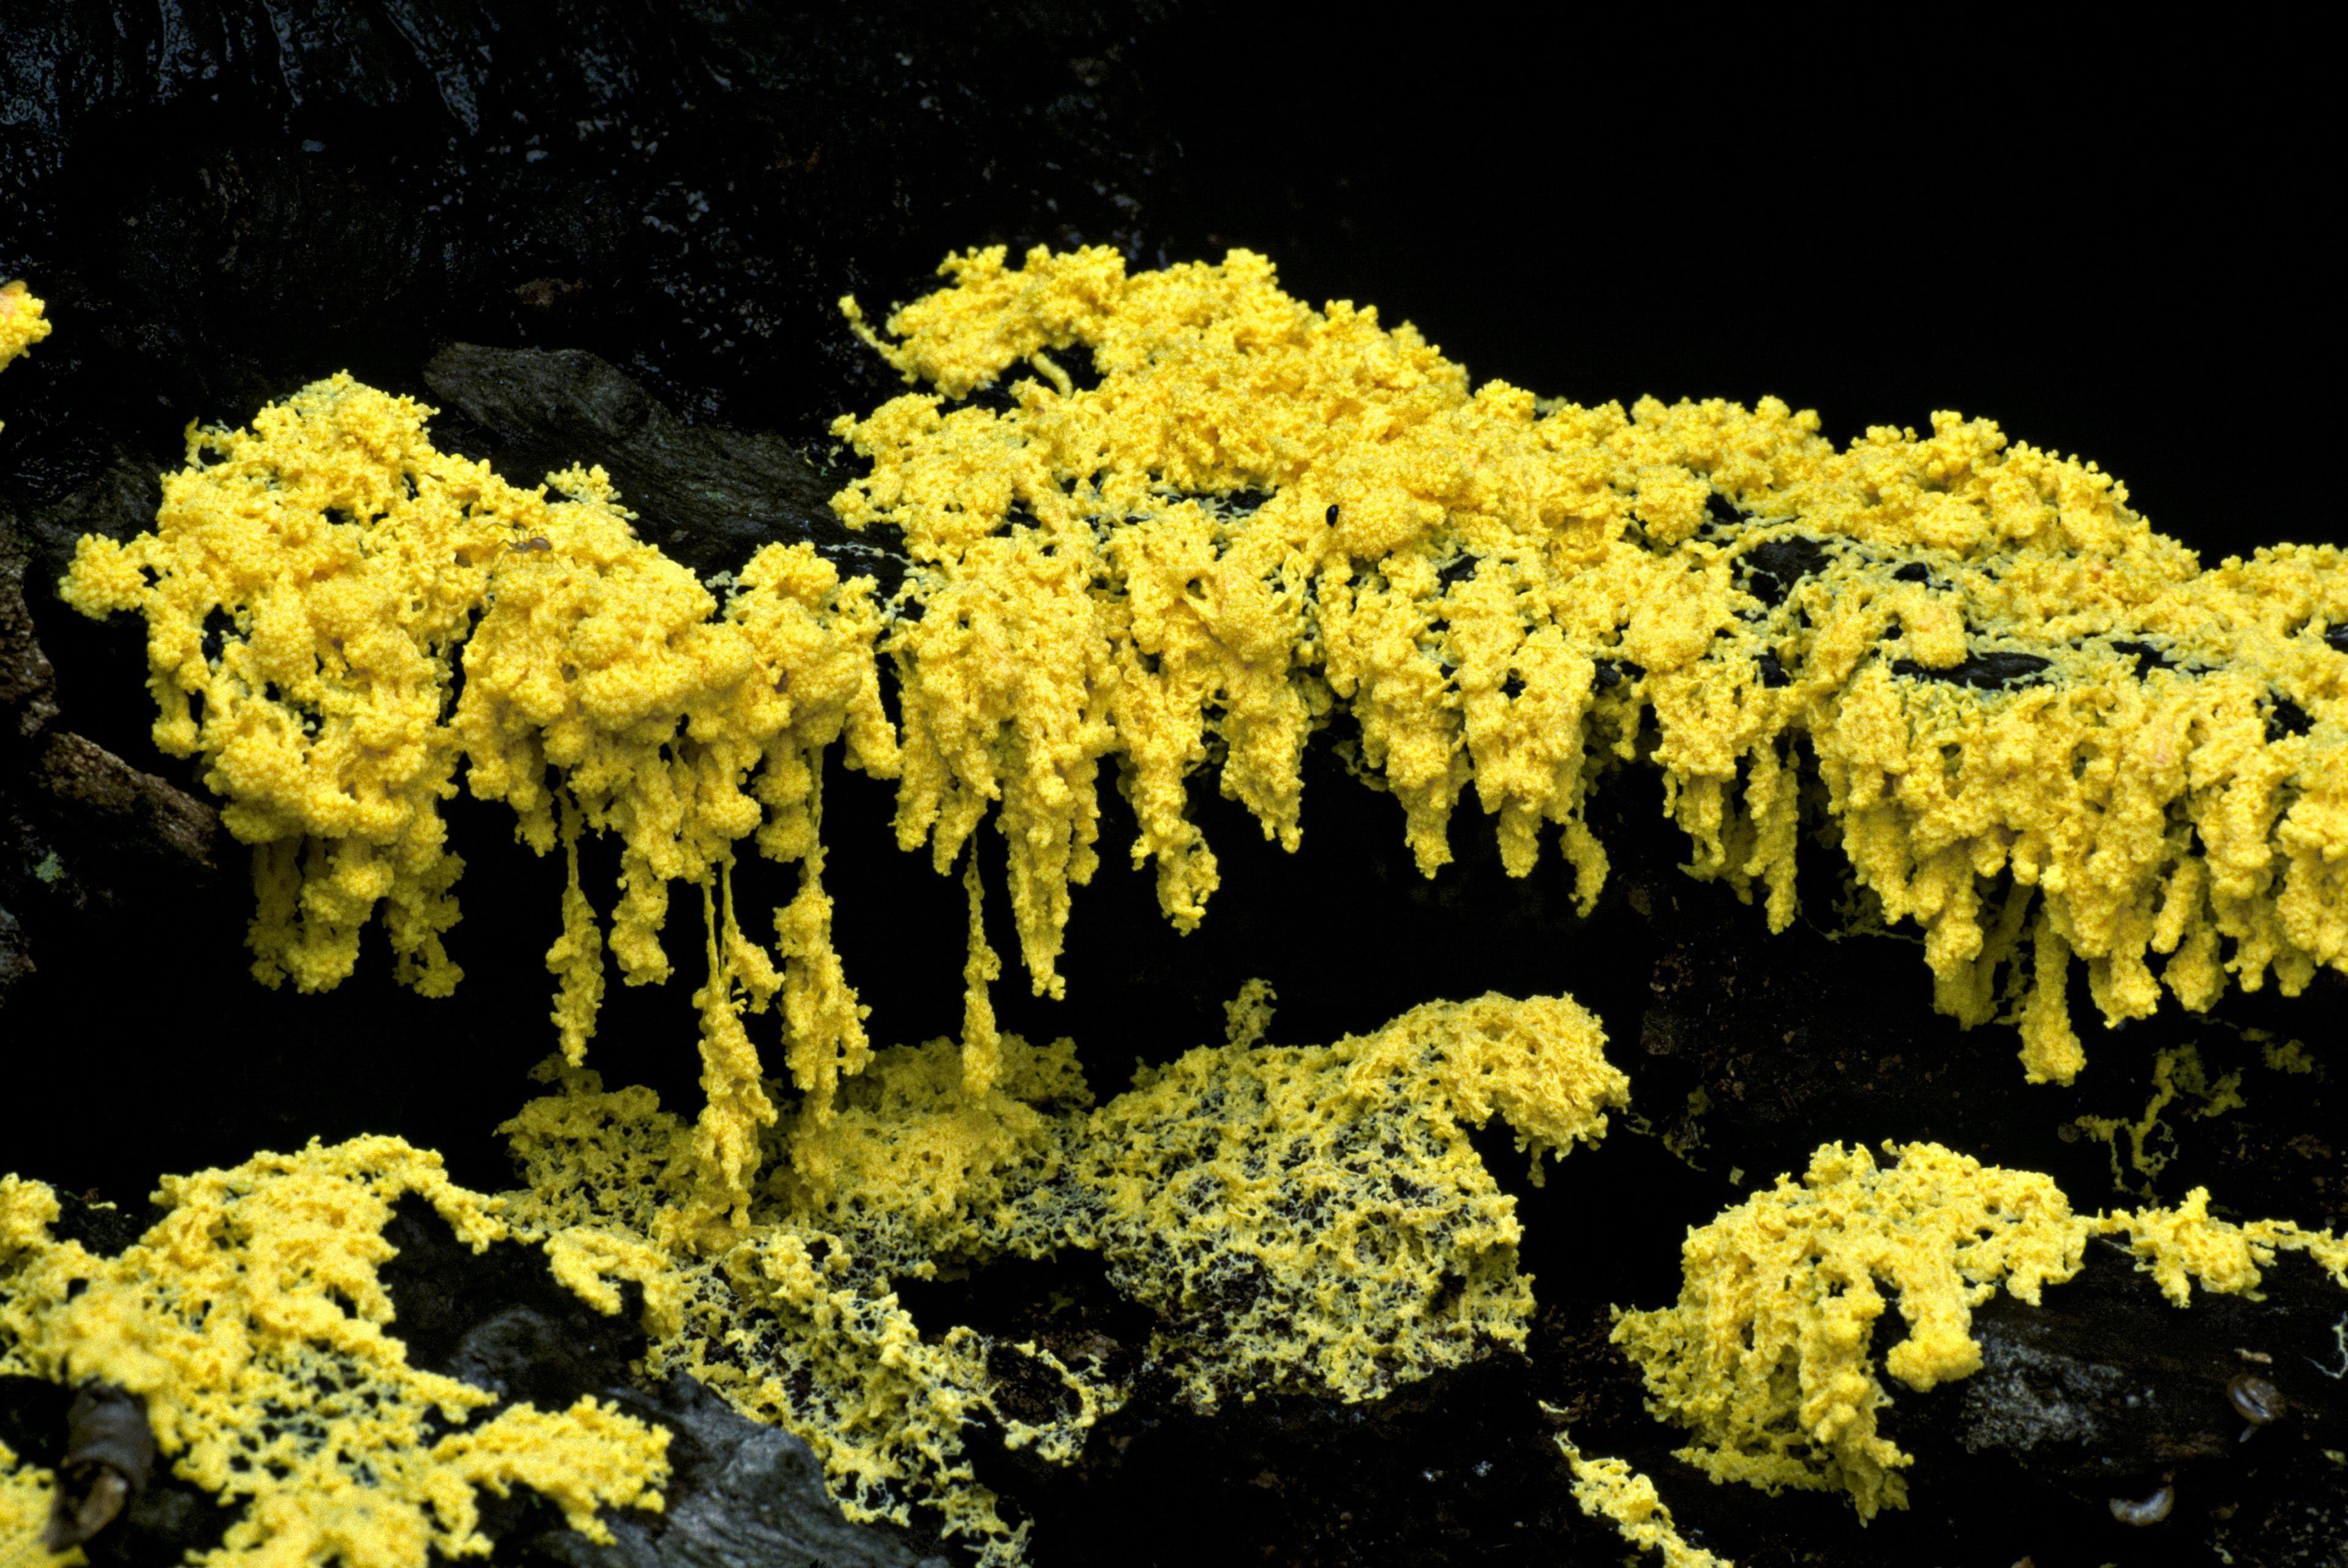 How to Identify and Deal with Dog Vomit Fungus